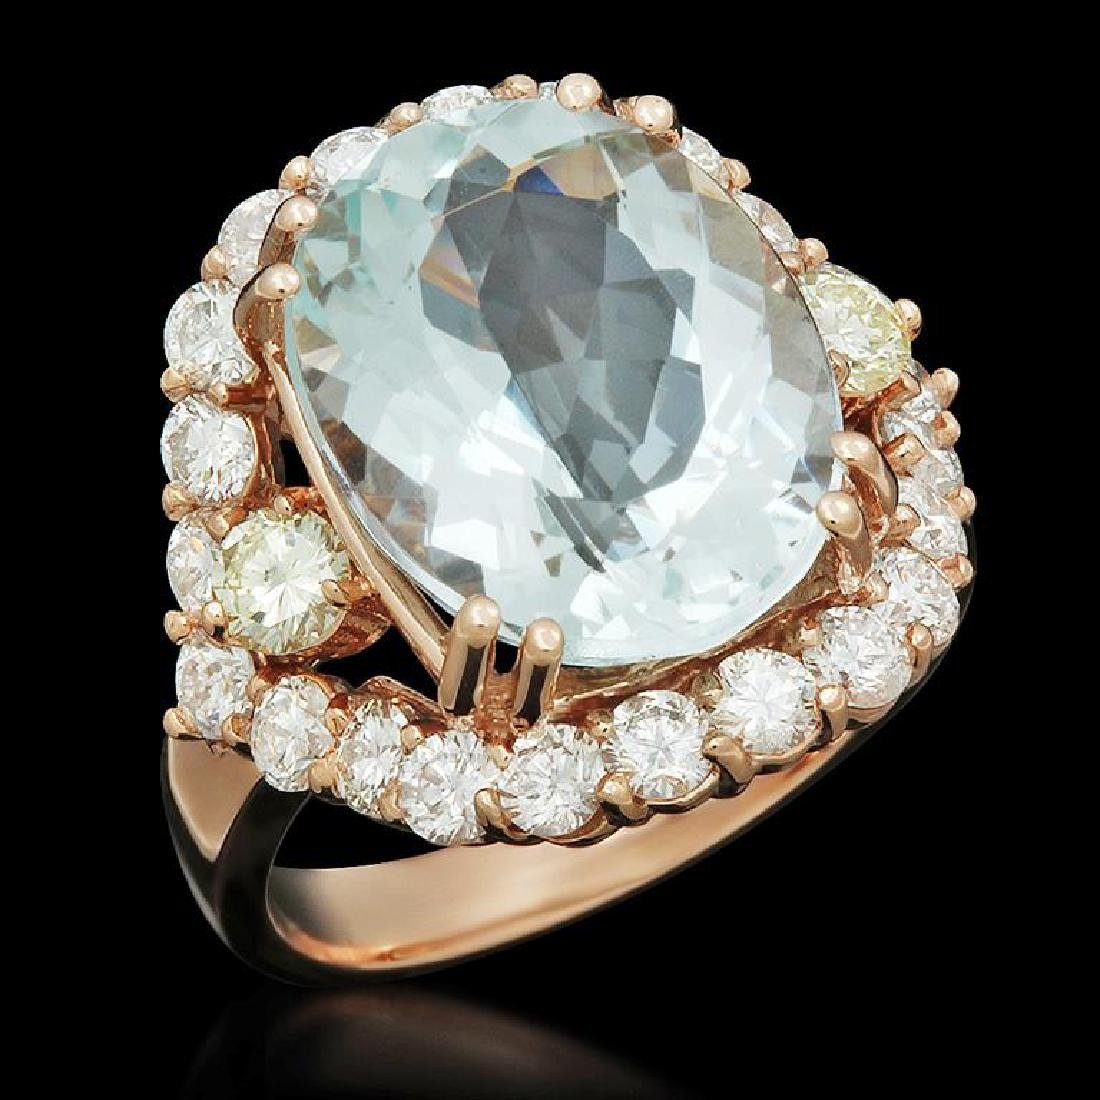 14K Gold 8.00ct Aquamarine 2.05ct Diamond Ring